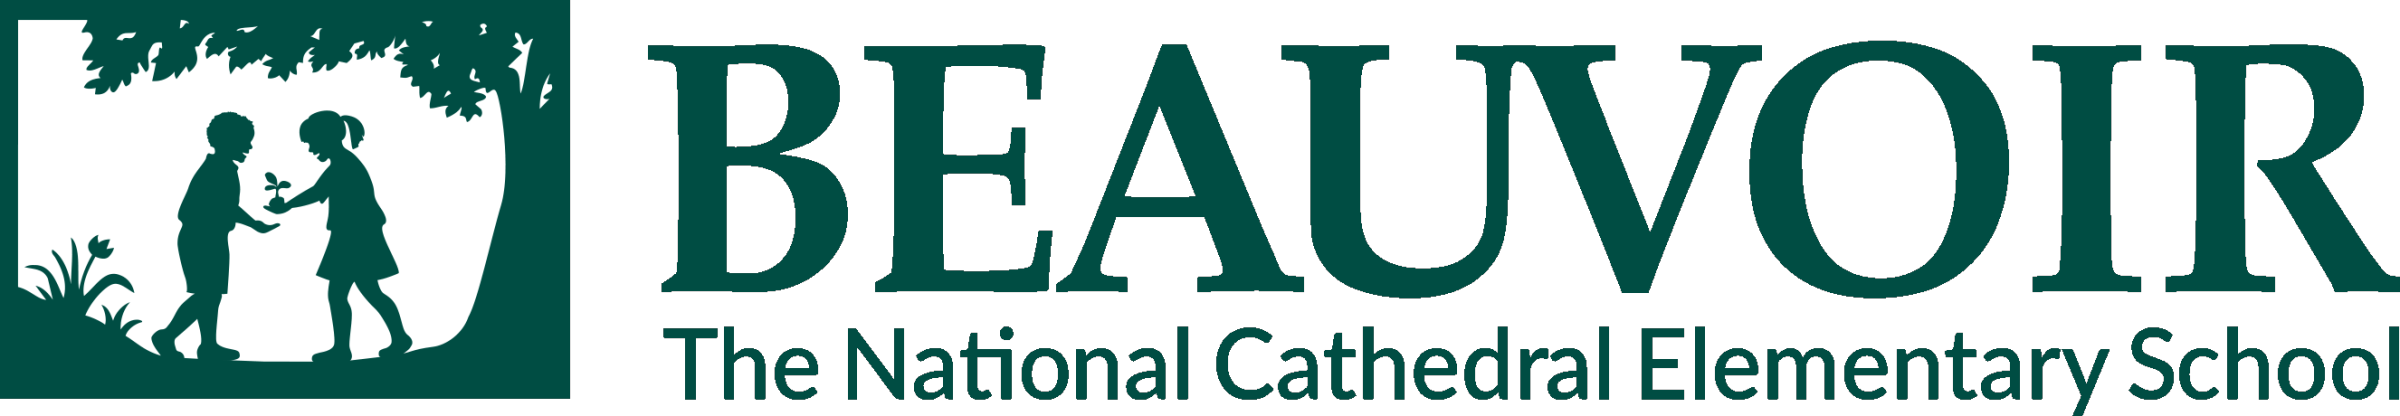 www.beauvoirschool.org